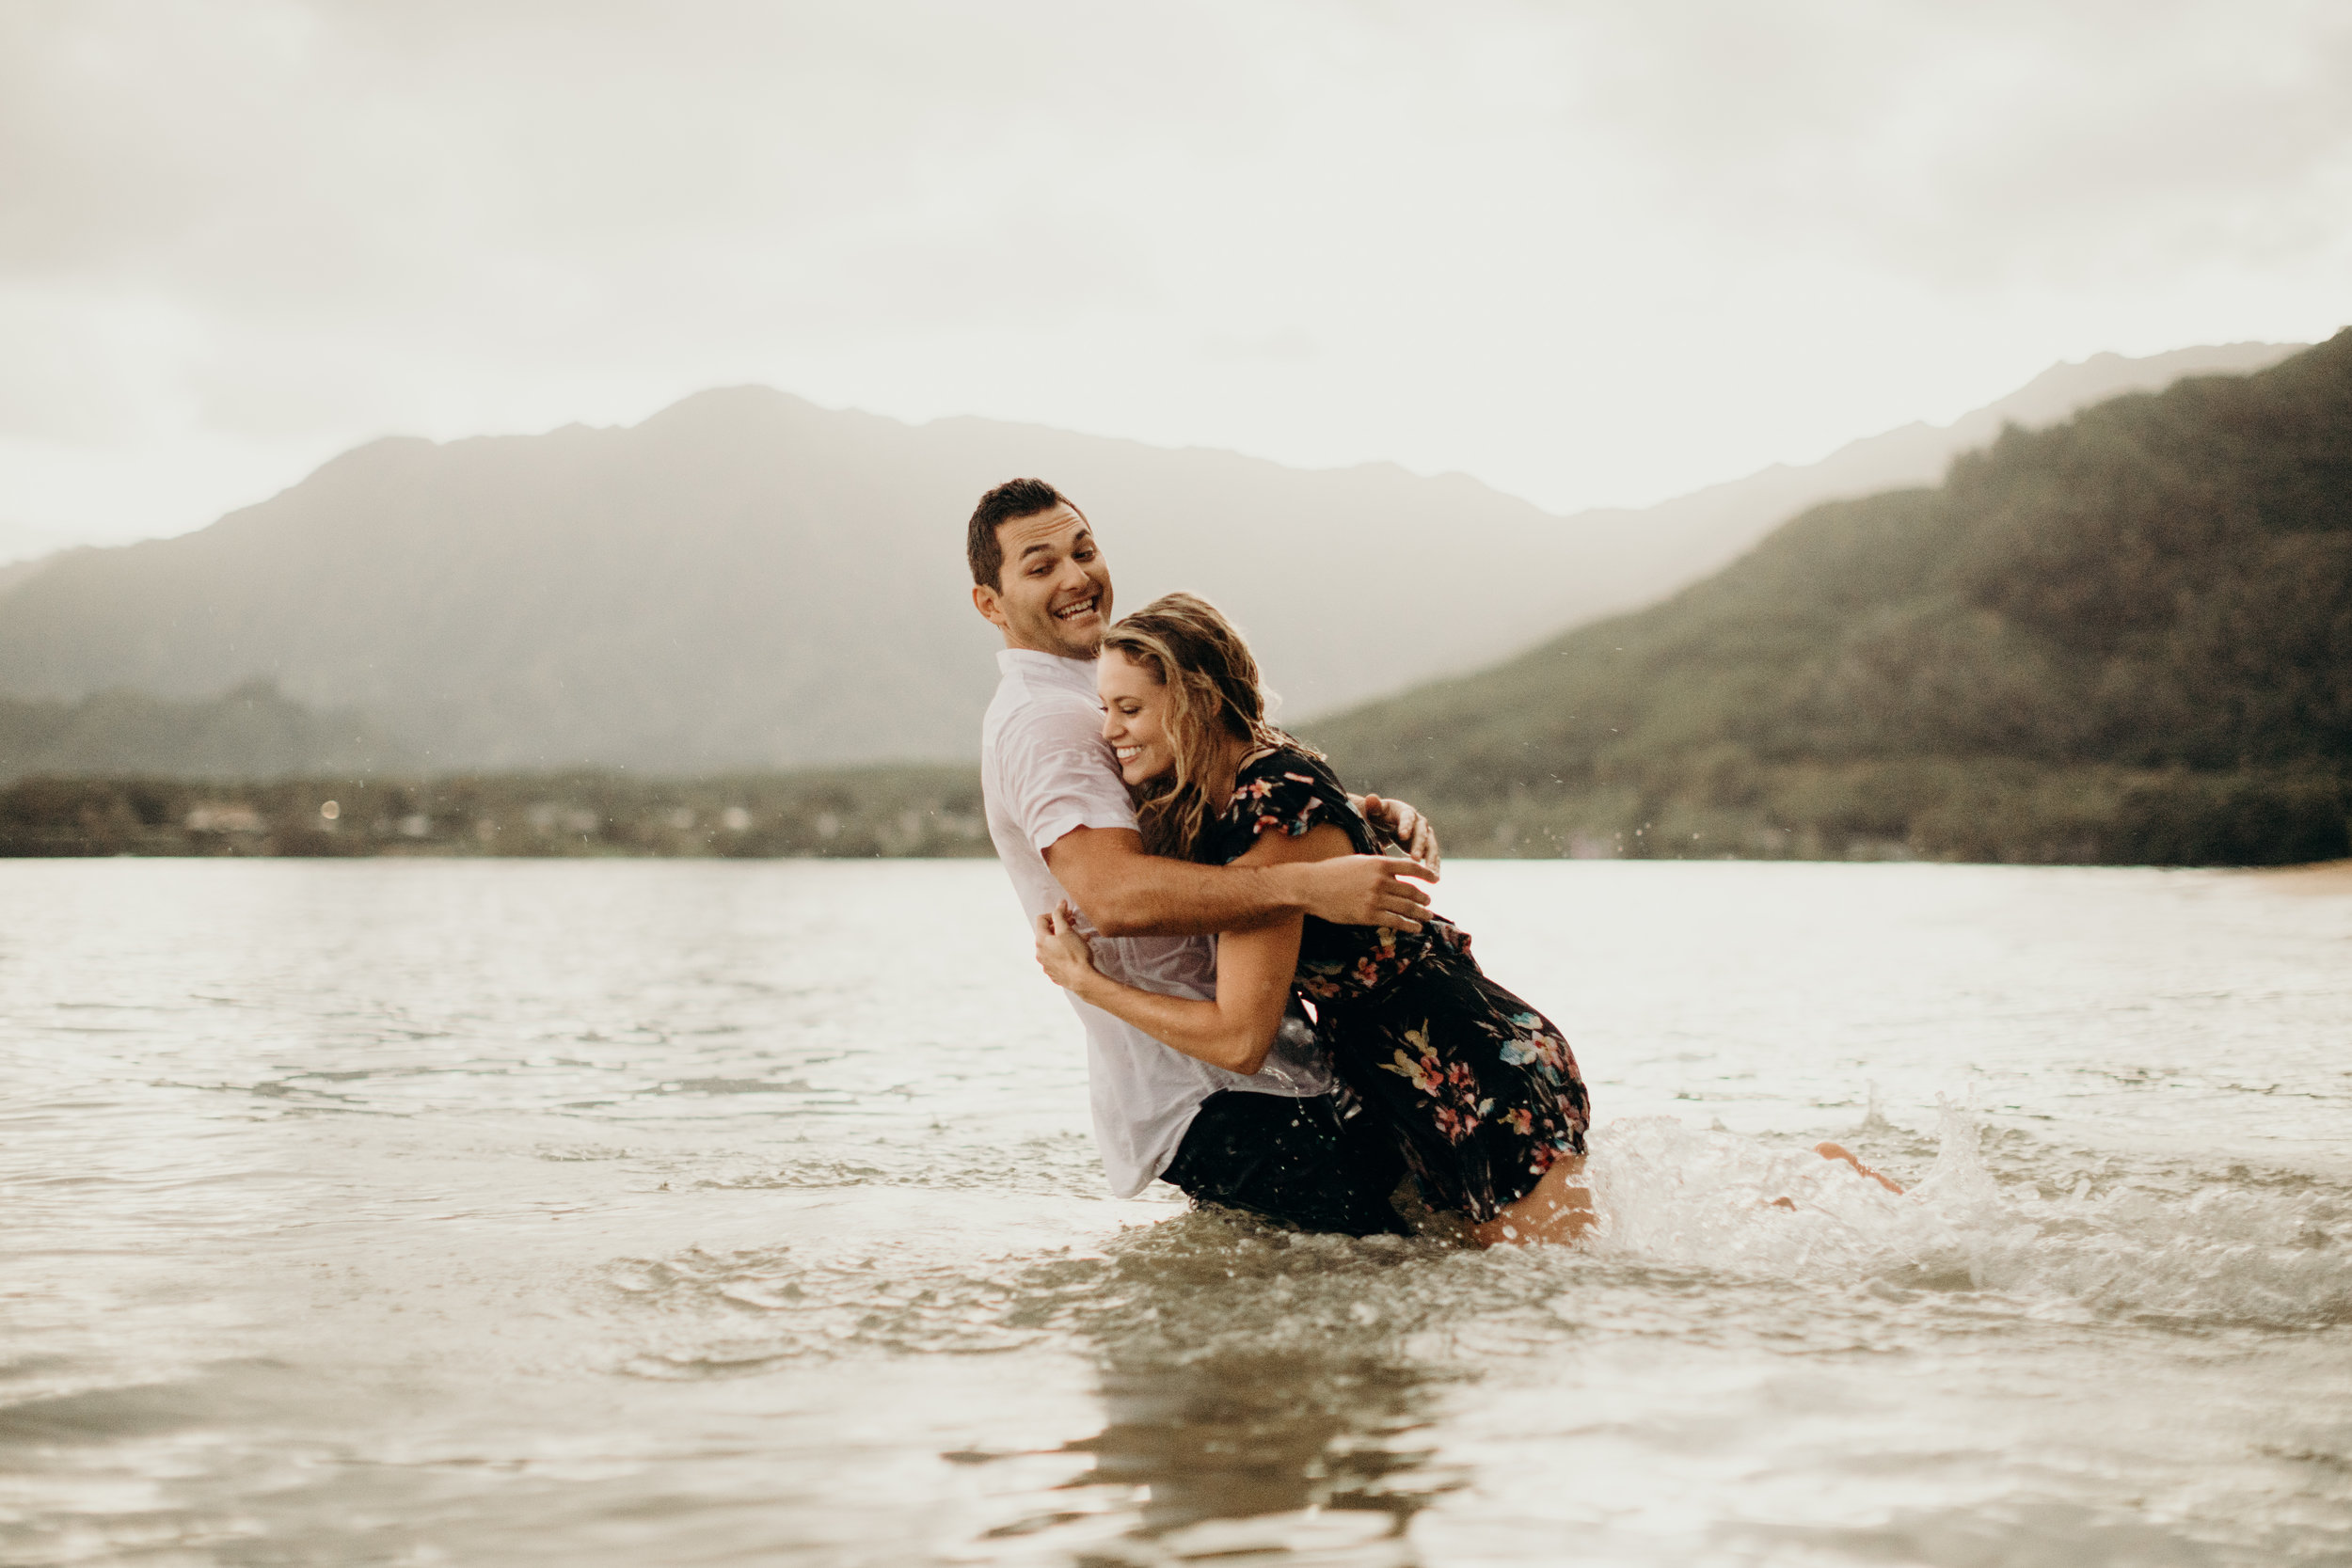 hawaii-engagement-photographer-keani-bakula-kualoa-ranch-36.jpg